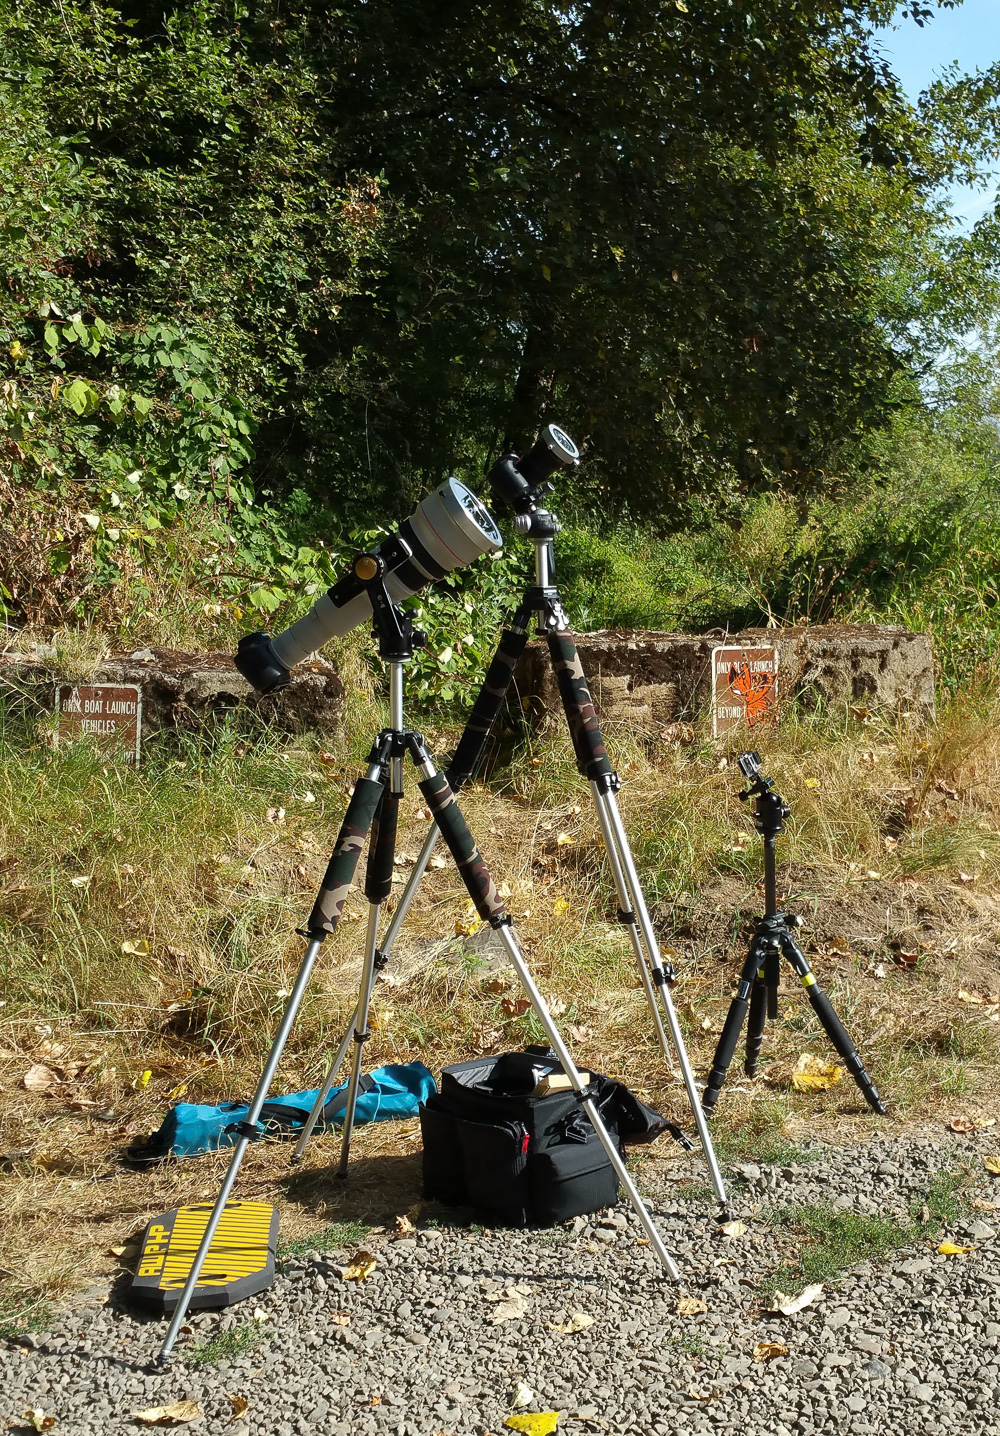 Practicing our setup the day before the solar eclipse. We thought we had a nice quiet location for the eclipse.